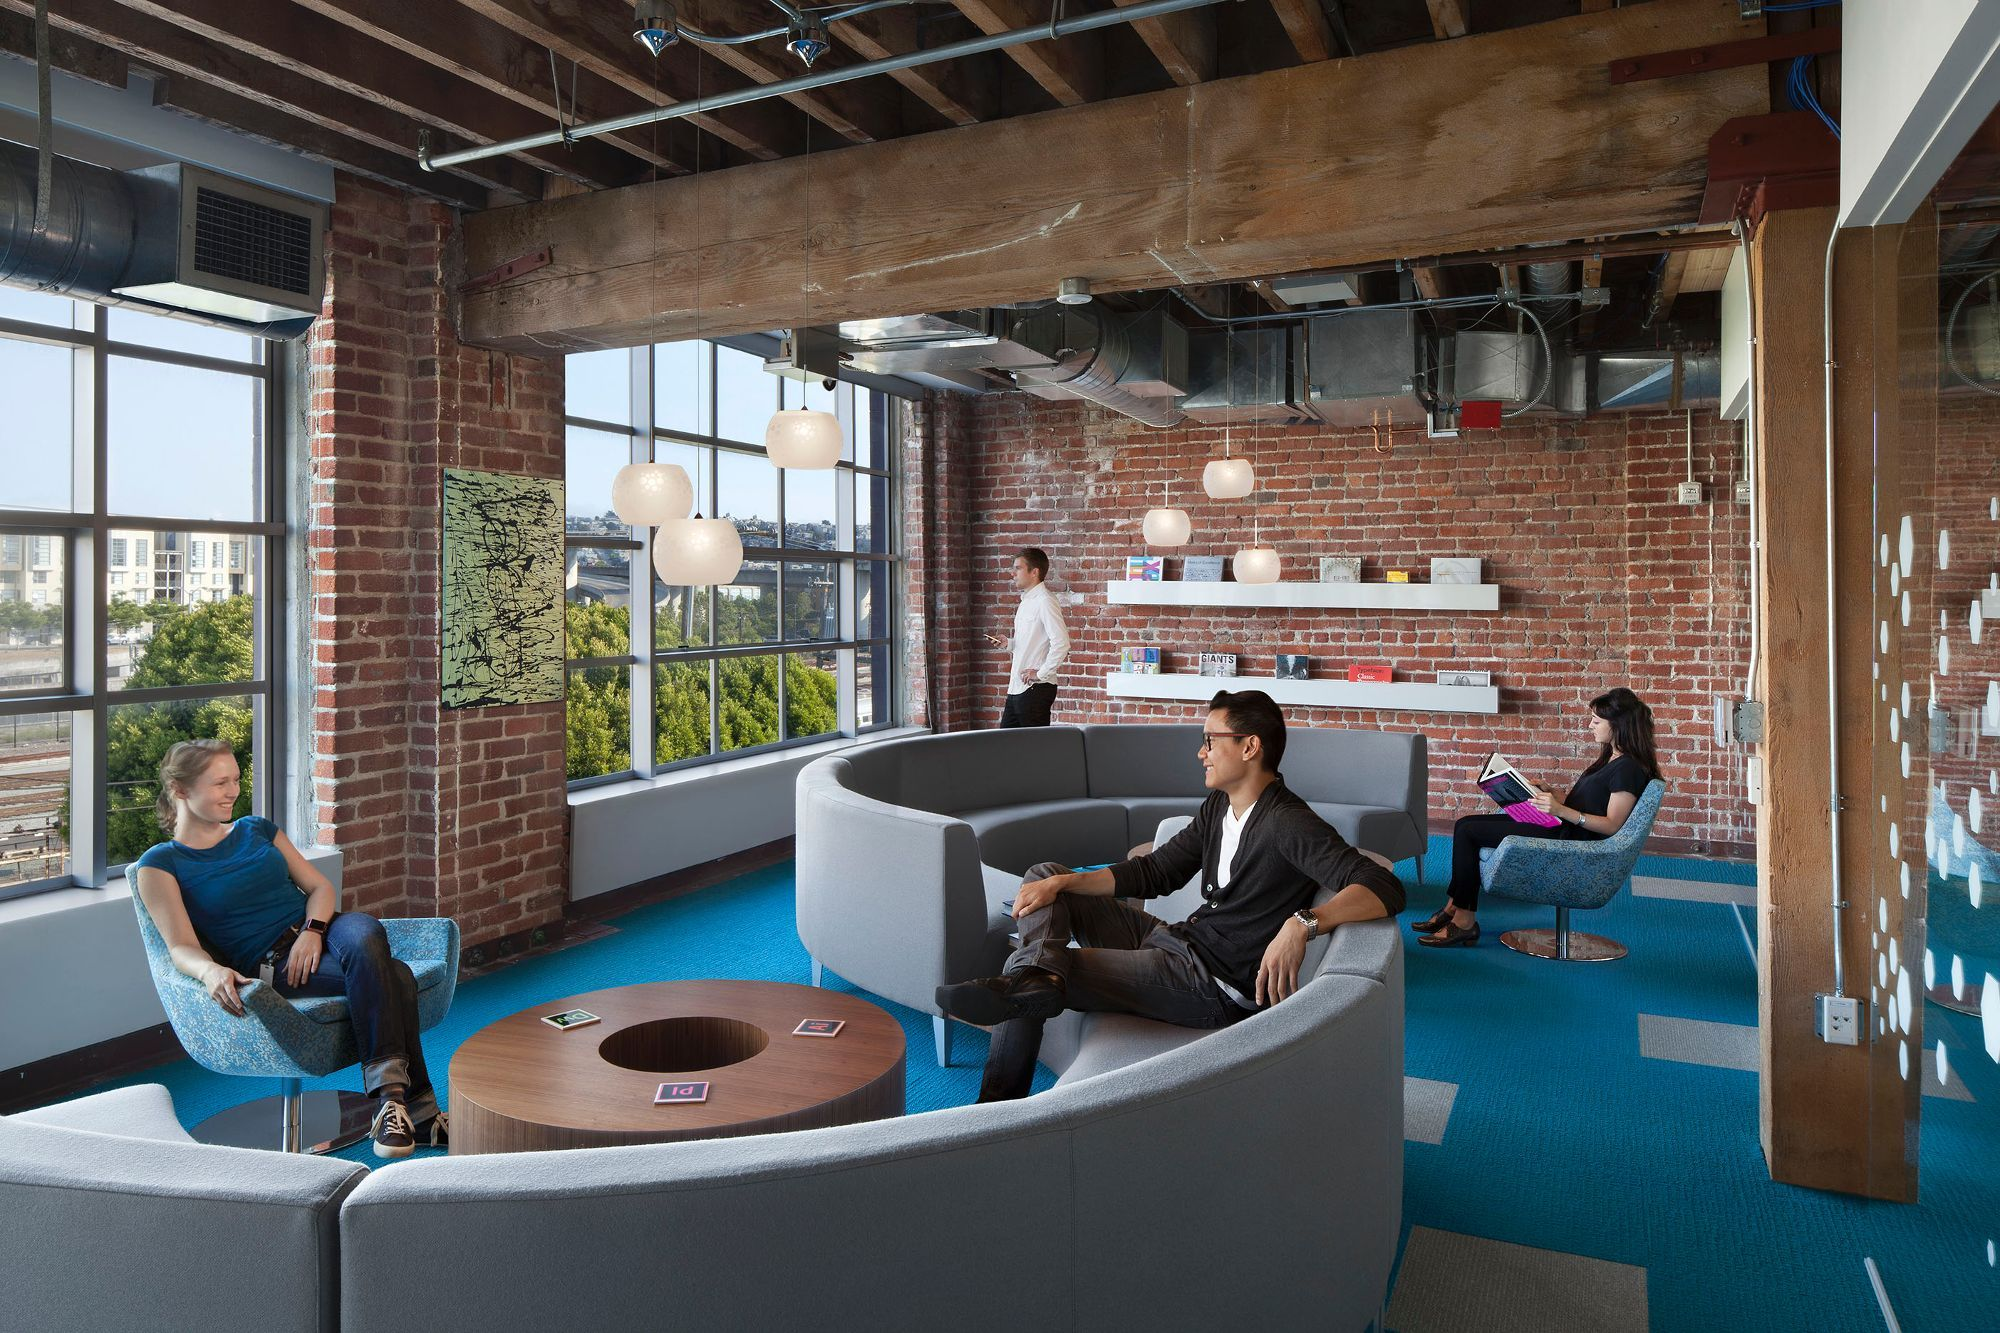 Charming Adobe Office Photos On Glassdoor. Office Space In San Francisco.